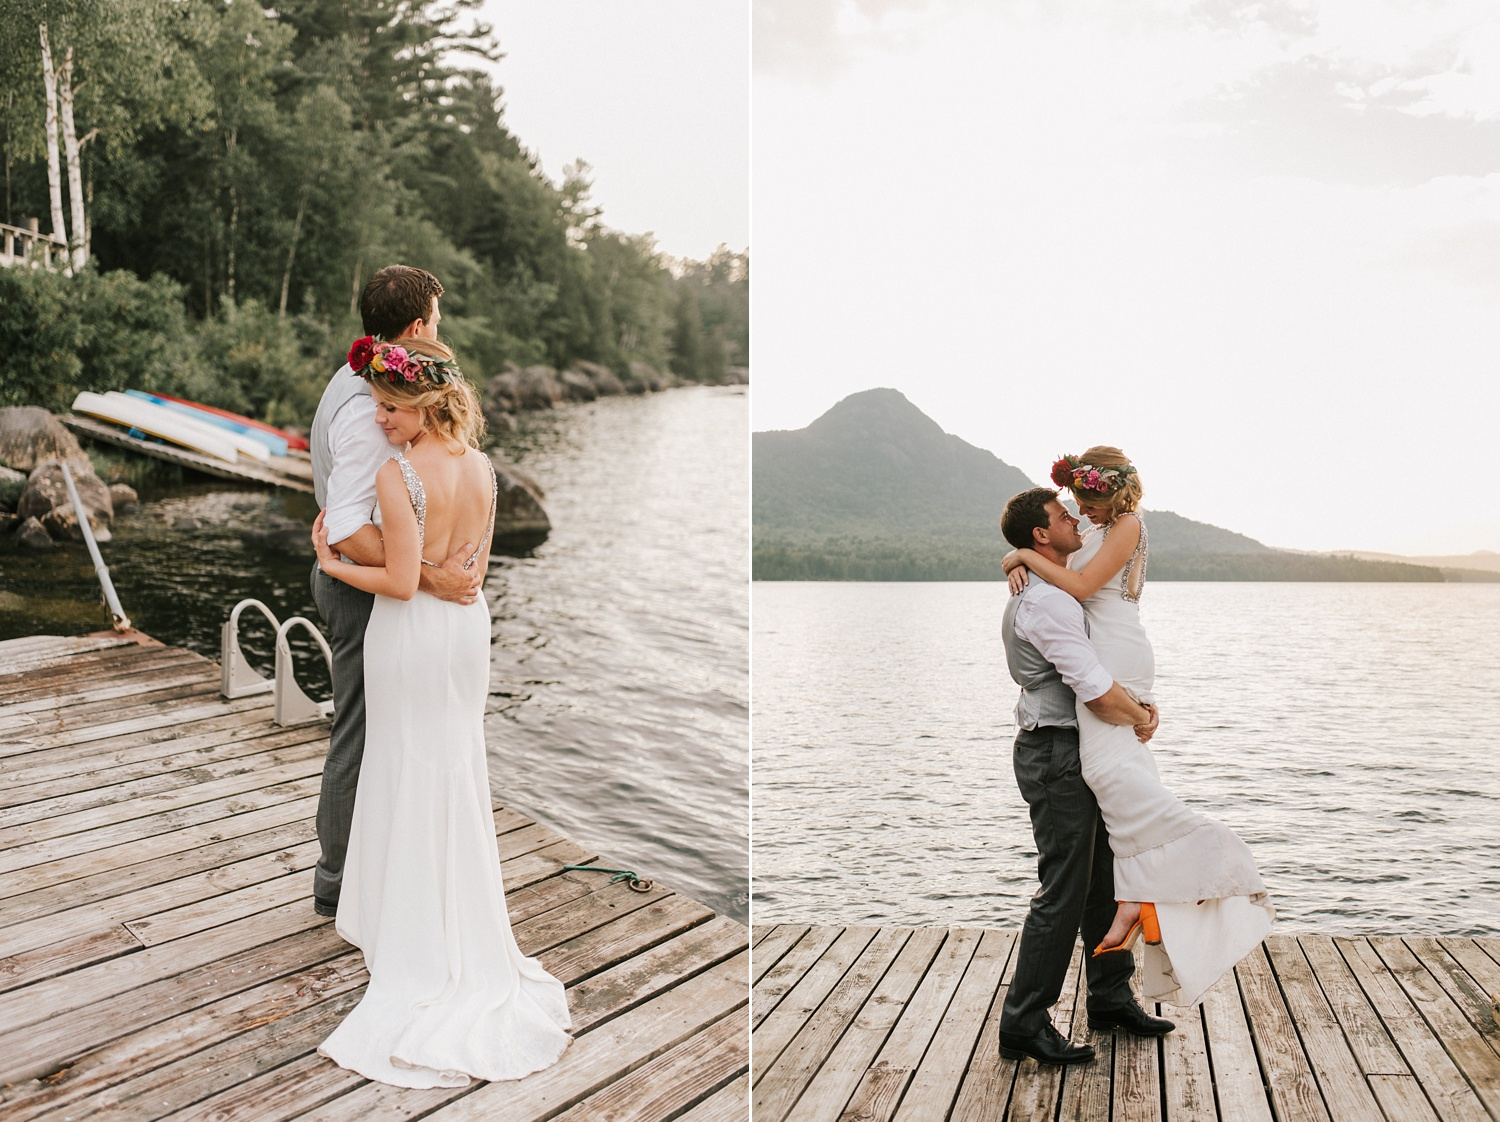 lake onawa wedding, moosehead Maine, Maine wedding, lake wedding, destination wedding, New England wedding, Maine wedding photographer, wedding photography, wedding details, detail shot, Maine Bride, Bride and Groom